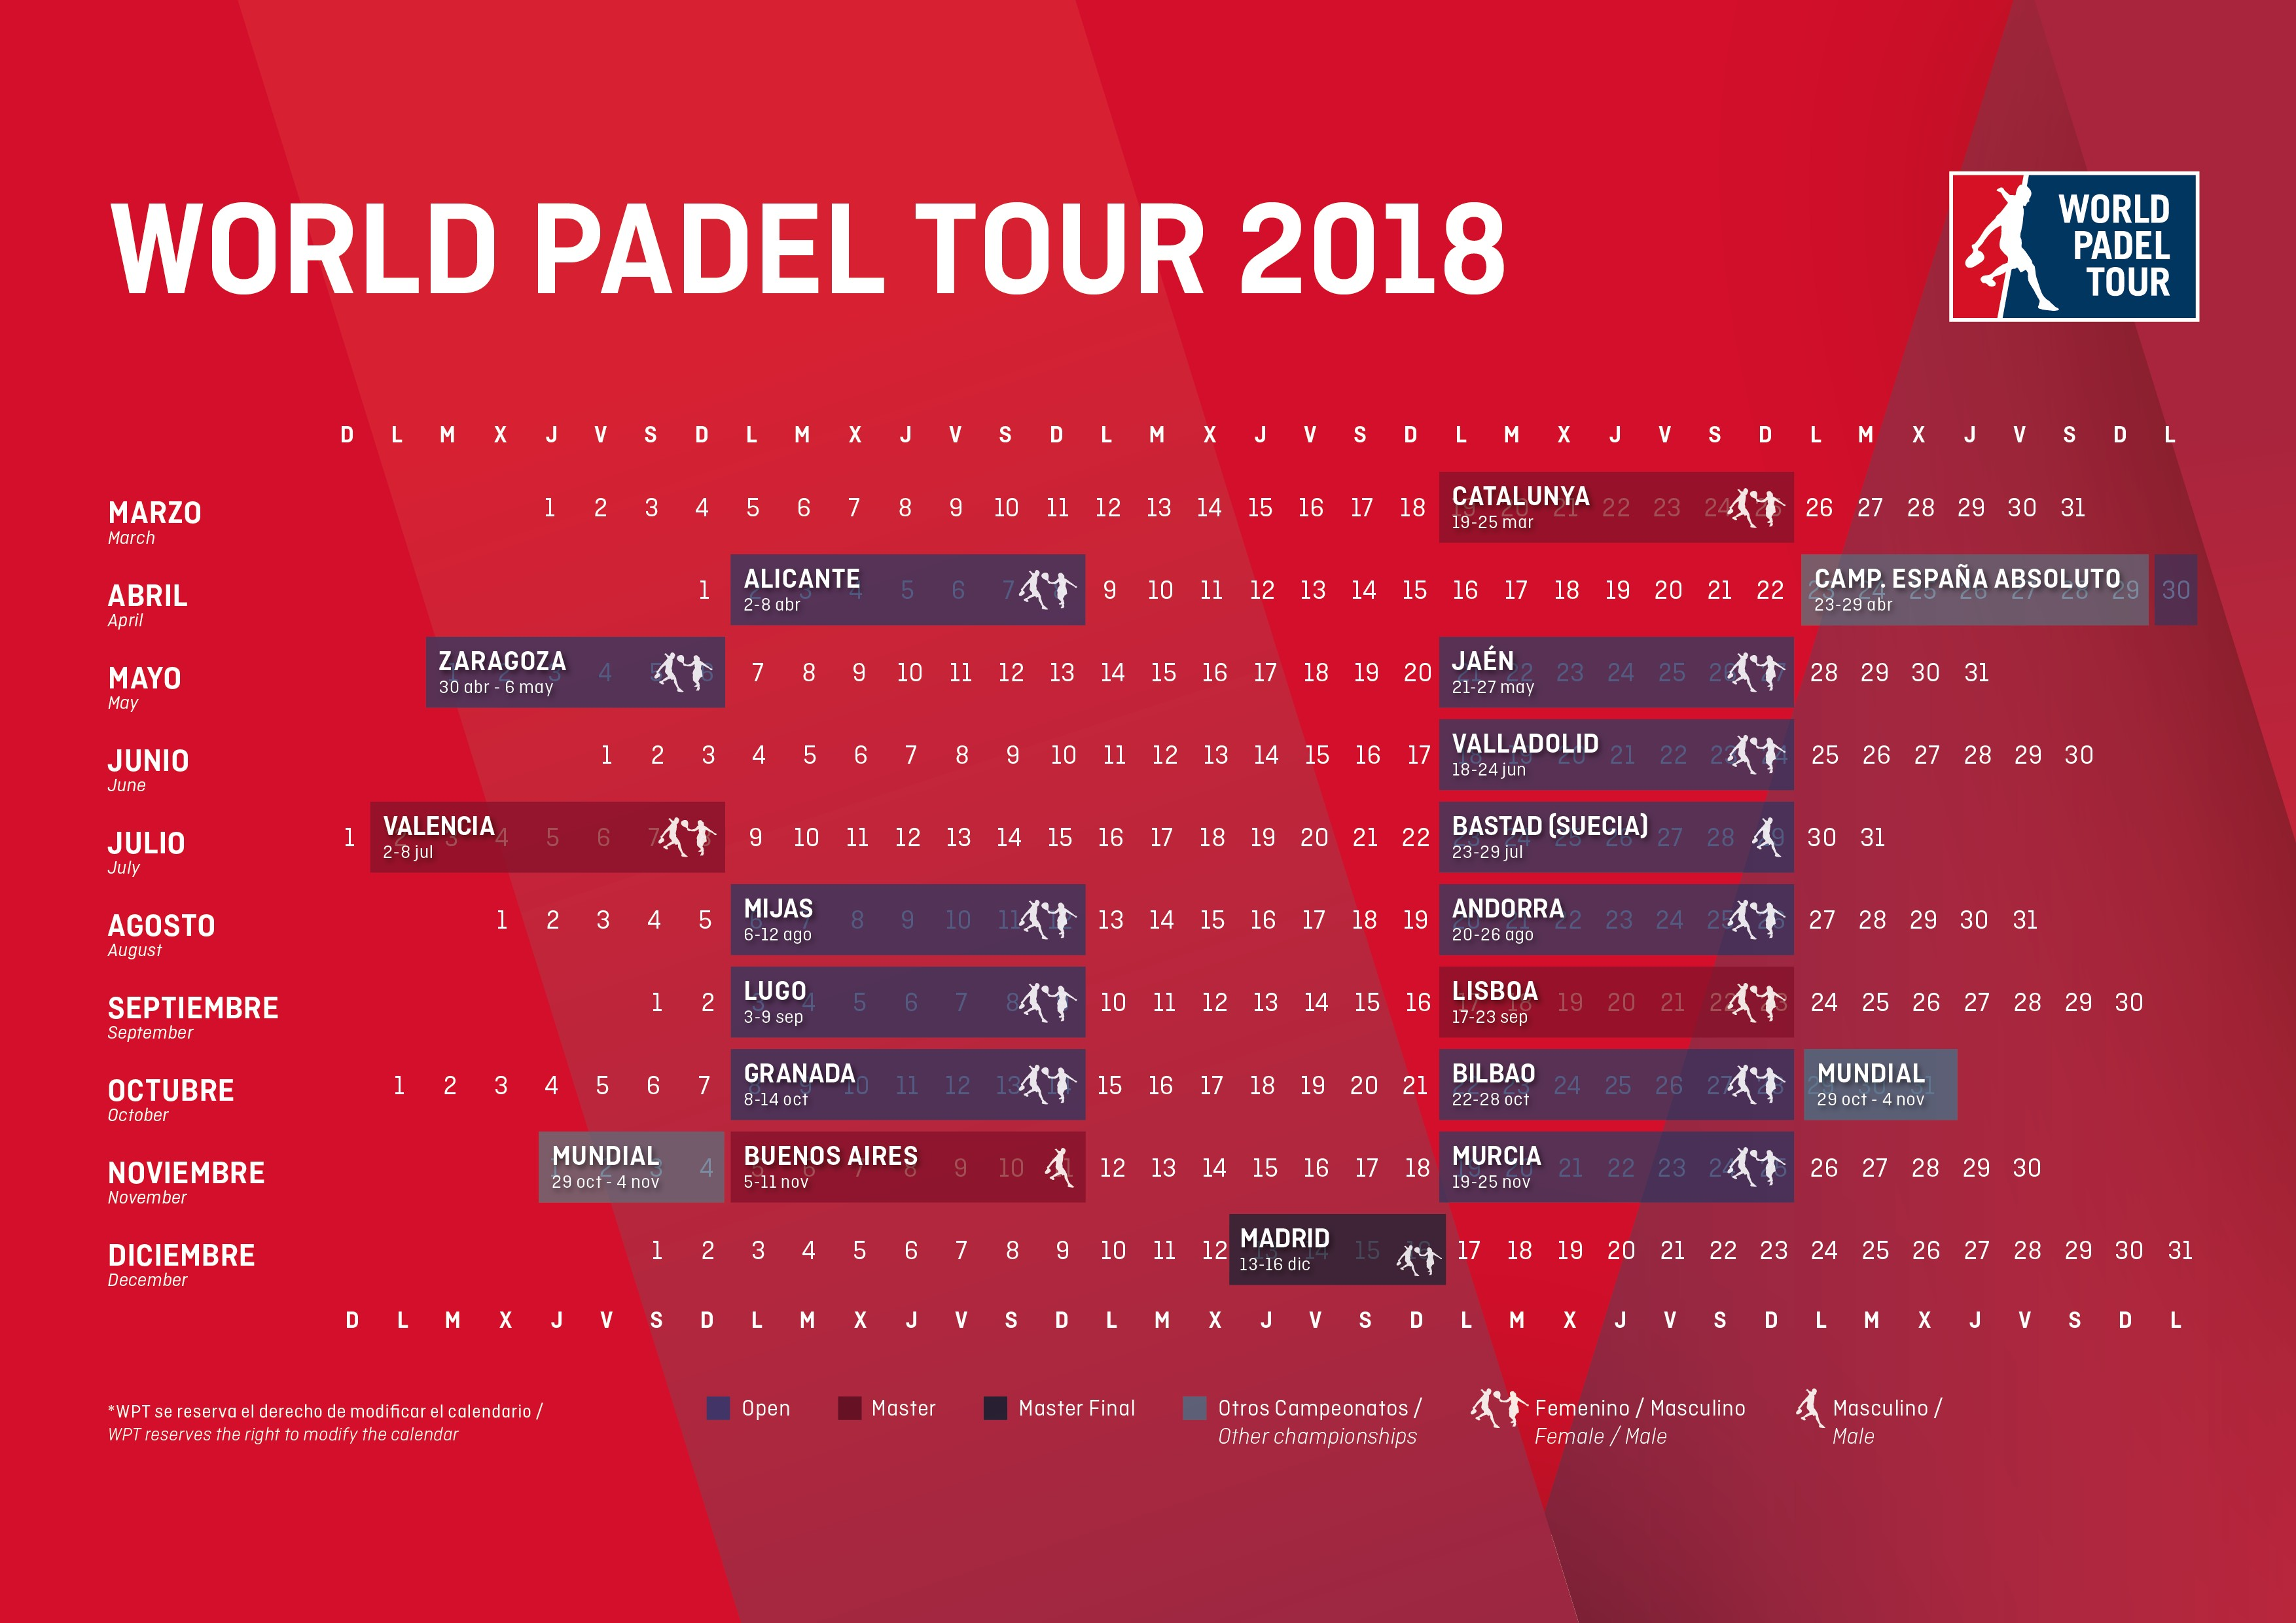 Wpt Calendario.The Route For 2018 Is Announced Here Is The Calendar For The World